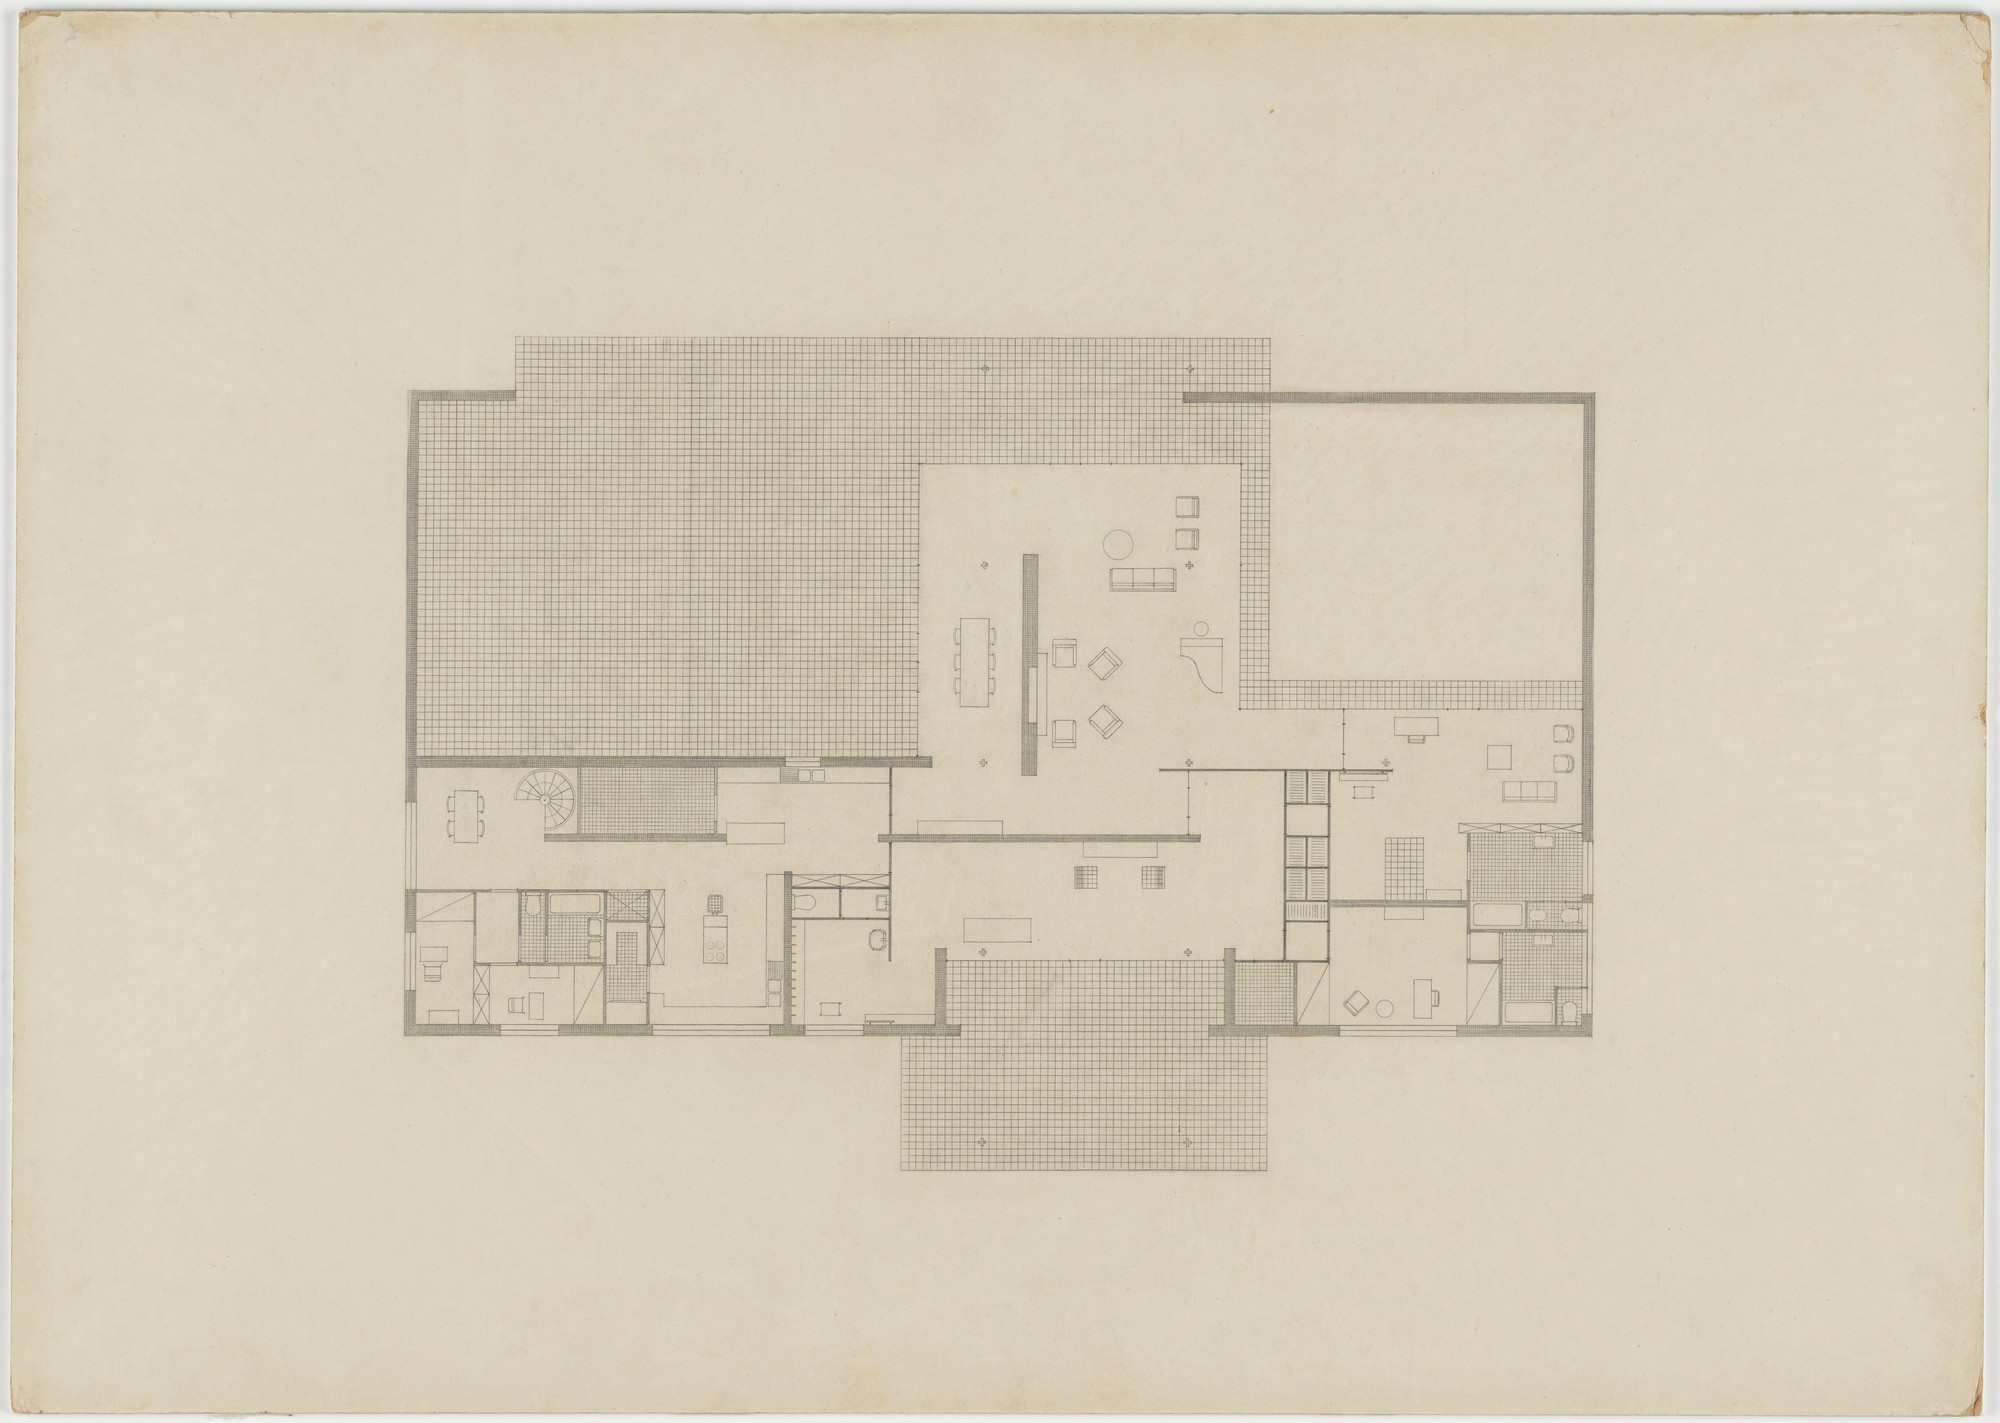 Ludwig Mies van der Rohe. Hubbe House Project, Magdeburg, Germany (Floor plan with furniture placement [final version]). 1934–1935